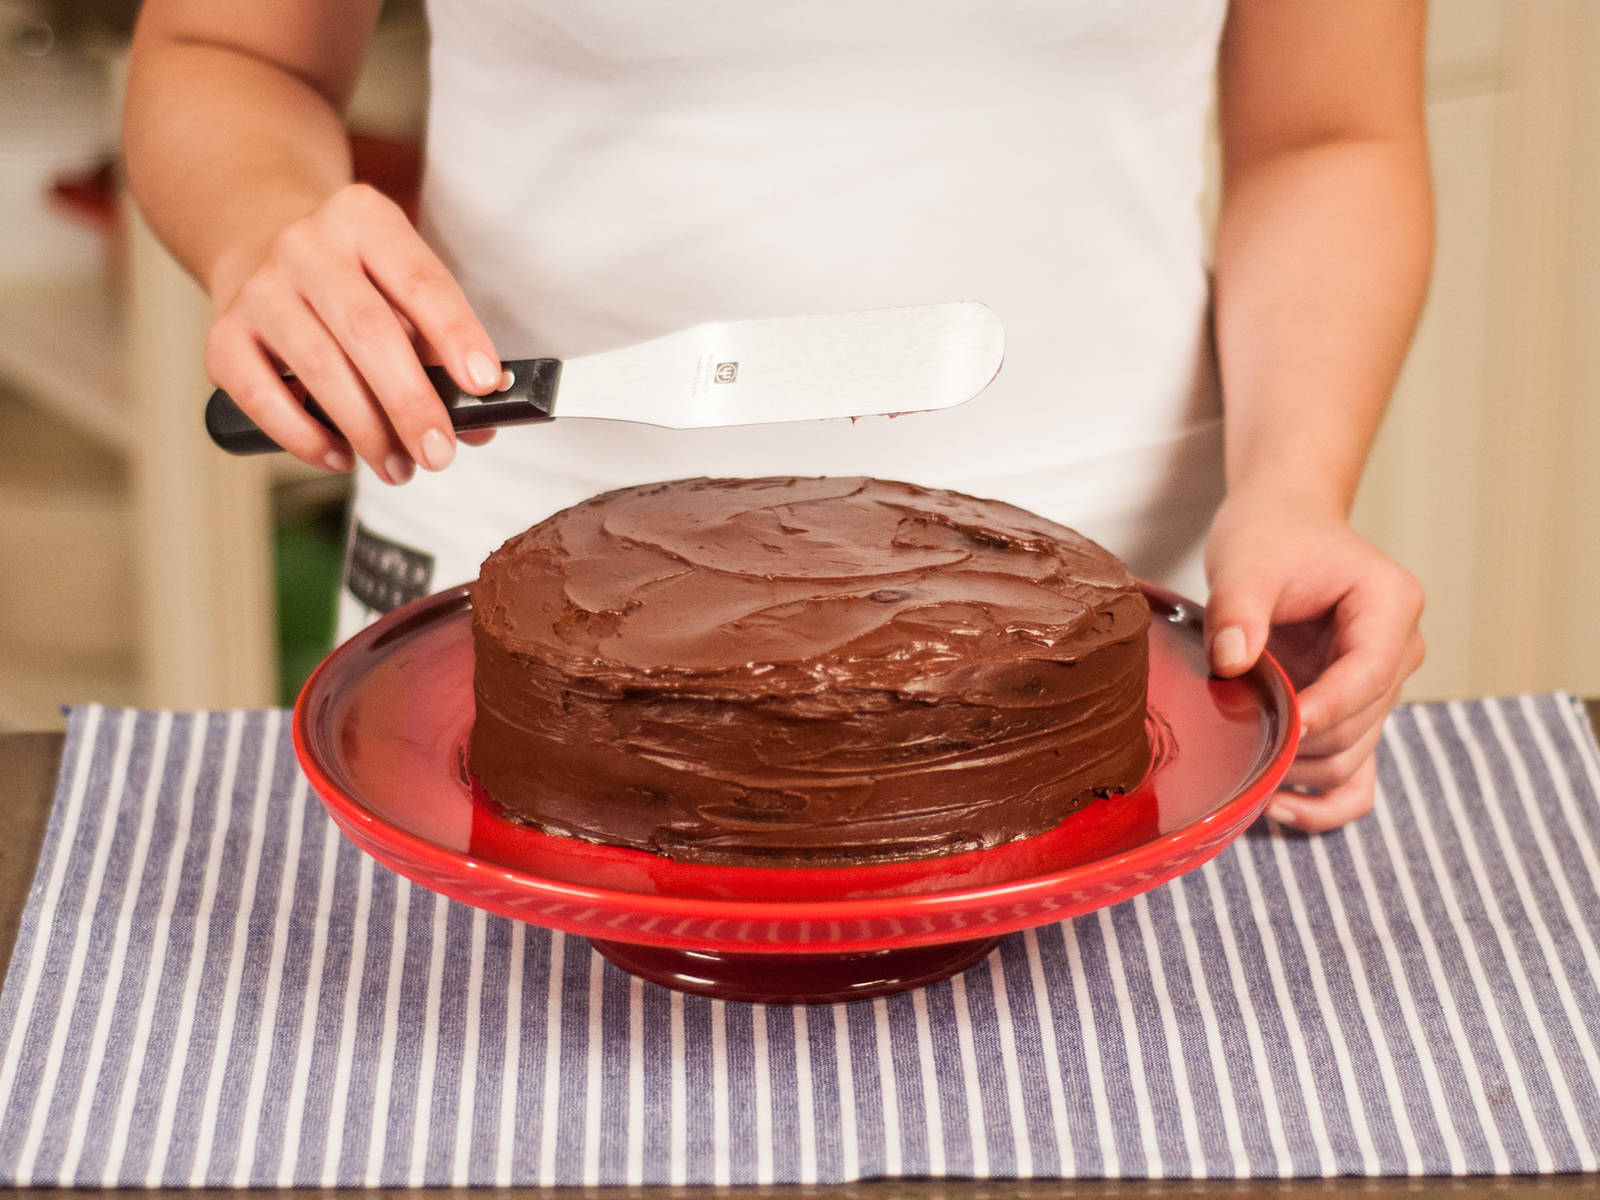 Place the second cake base on top and cover the whole cake with remaining chocolate ganache. Serve with a cup of coffee or tea.